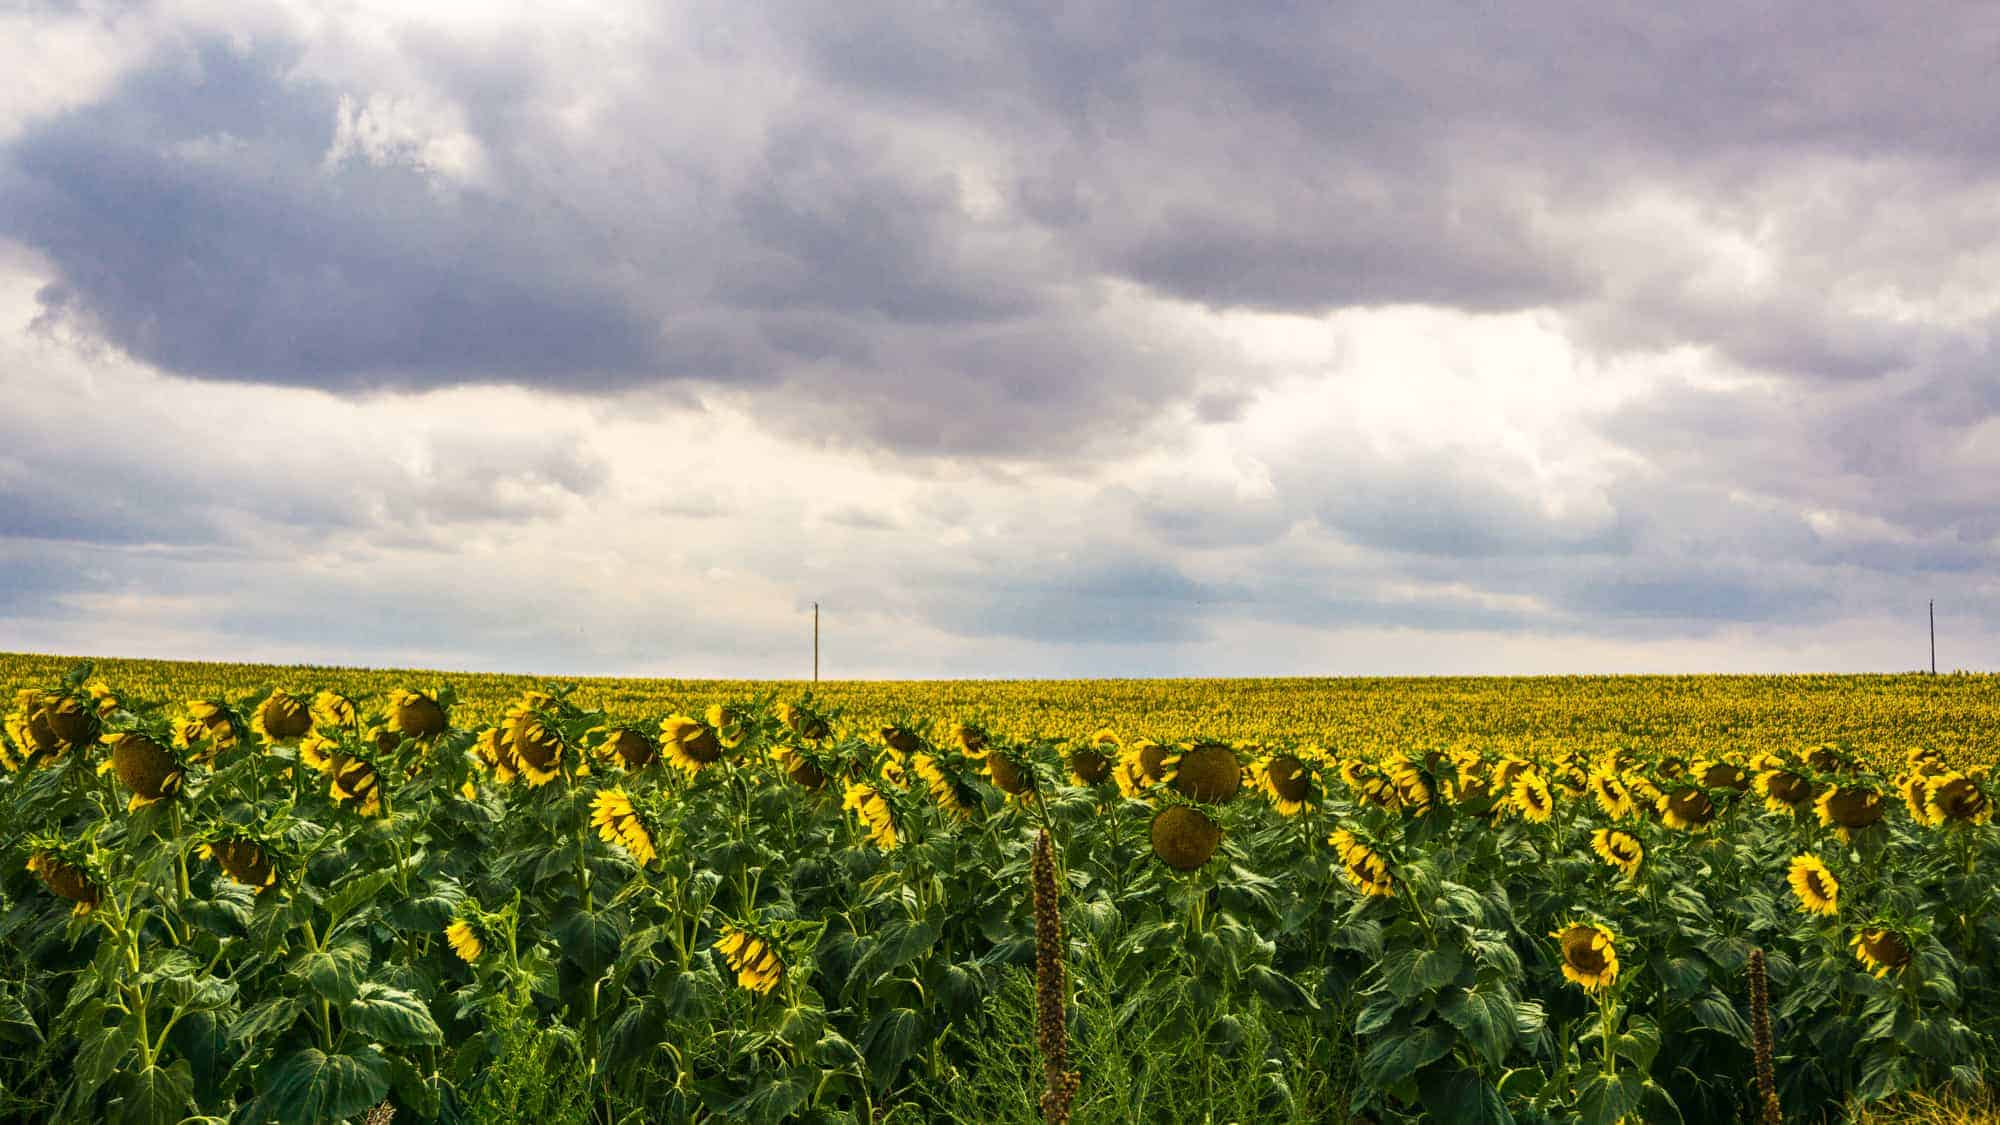 Sunflower Fields 1 - Van Life: Ottawa to Snowbasin